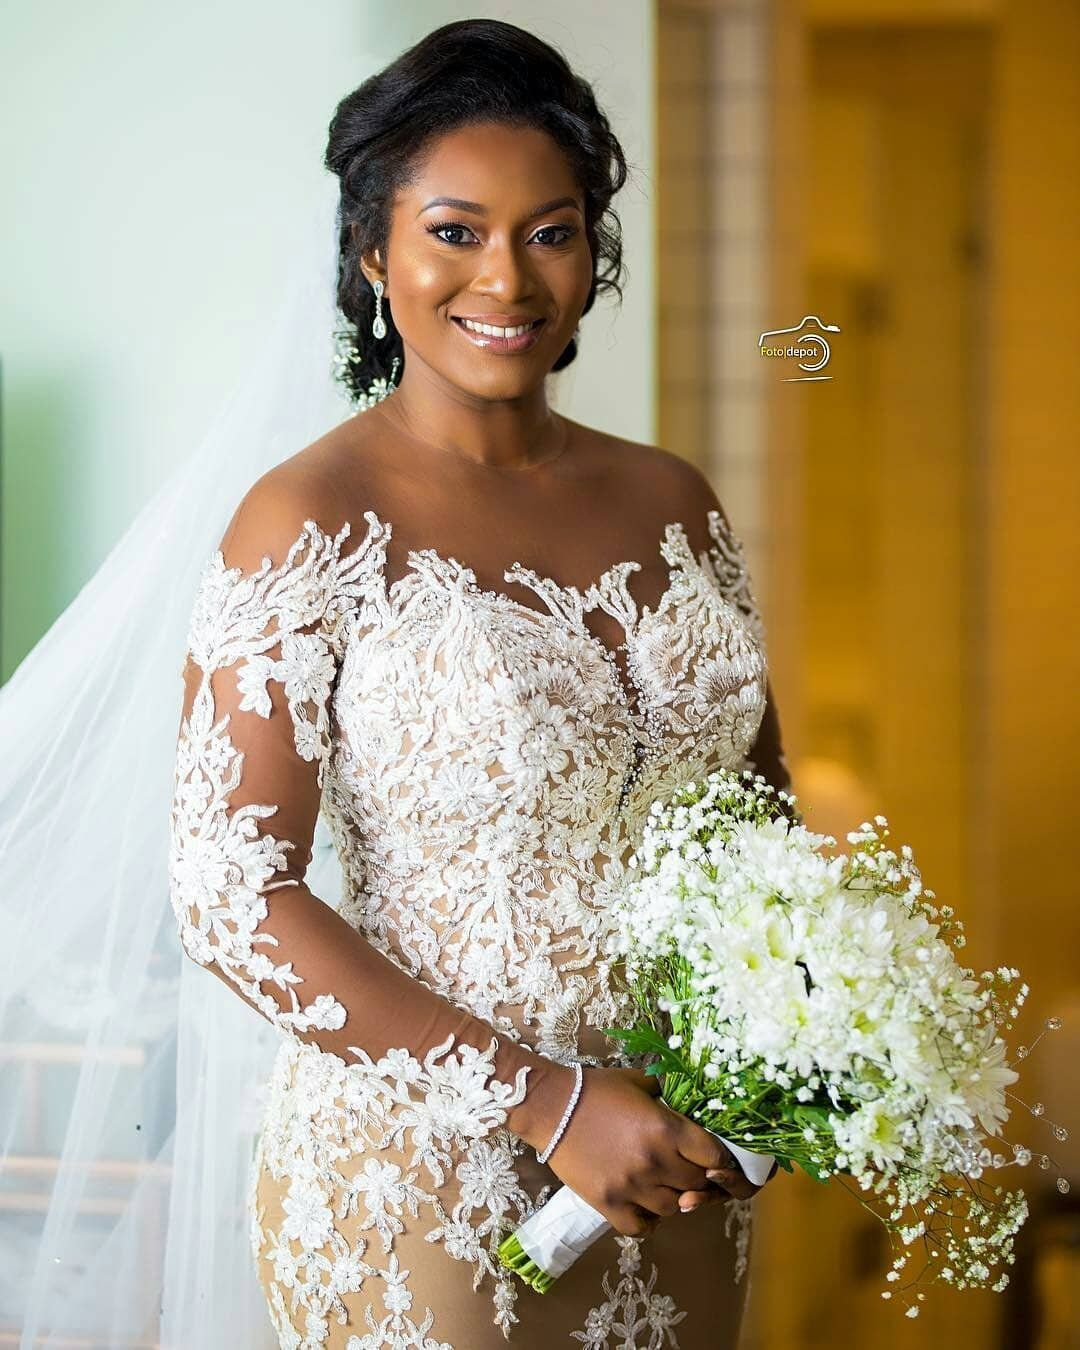 Sarkodie Wedding Photos With His Wife Tracy Sarkcess Titi And